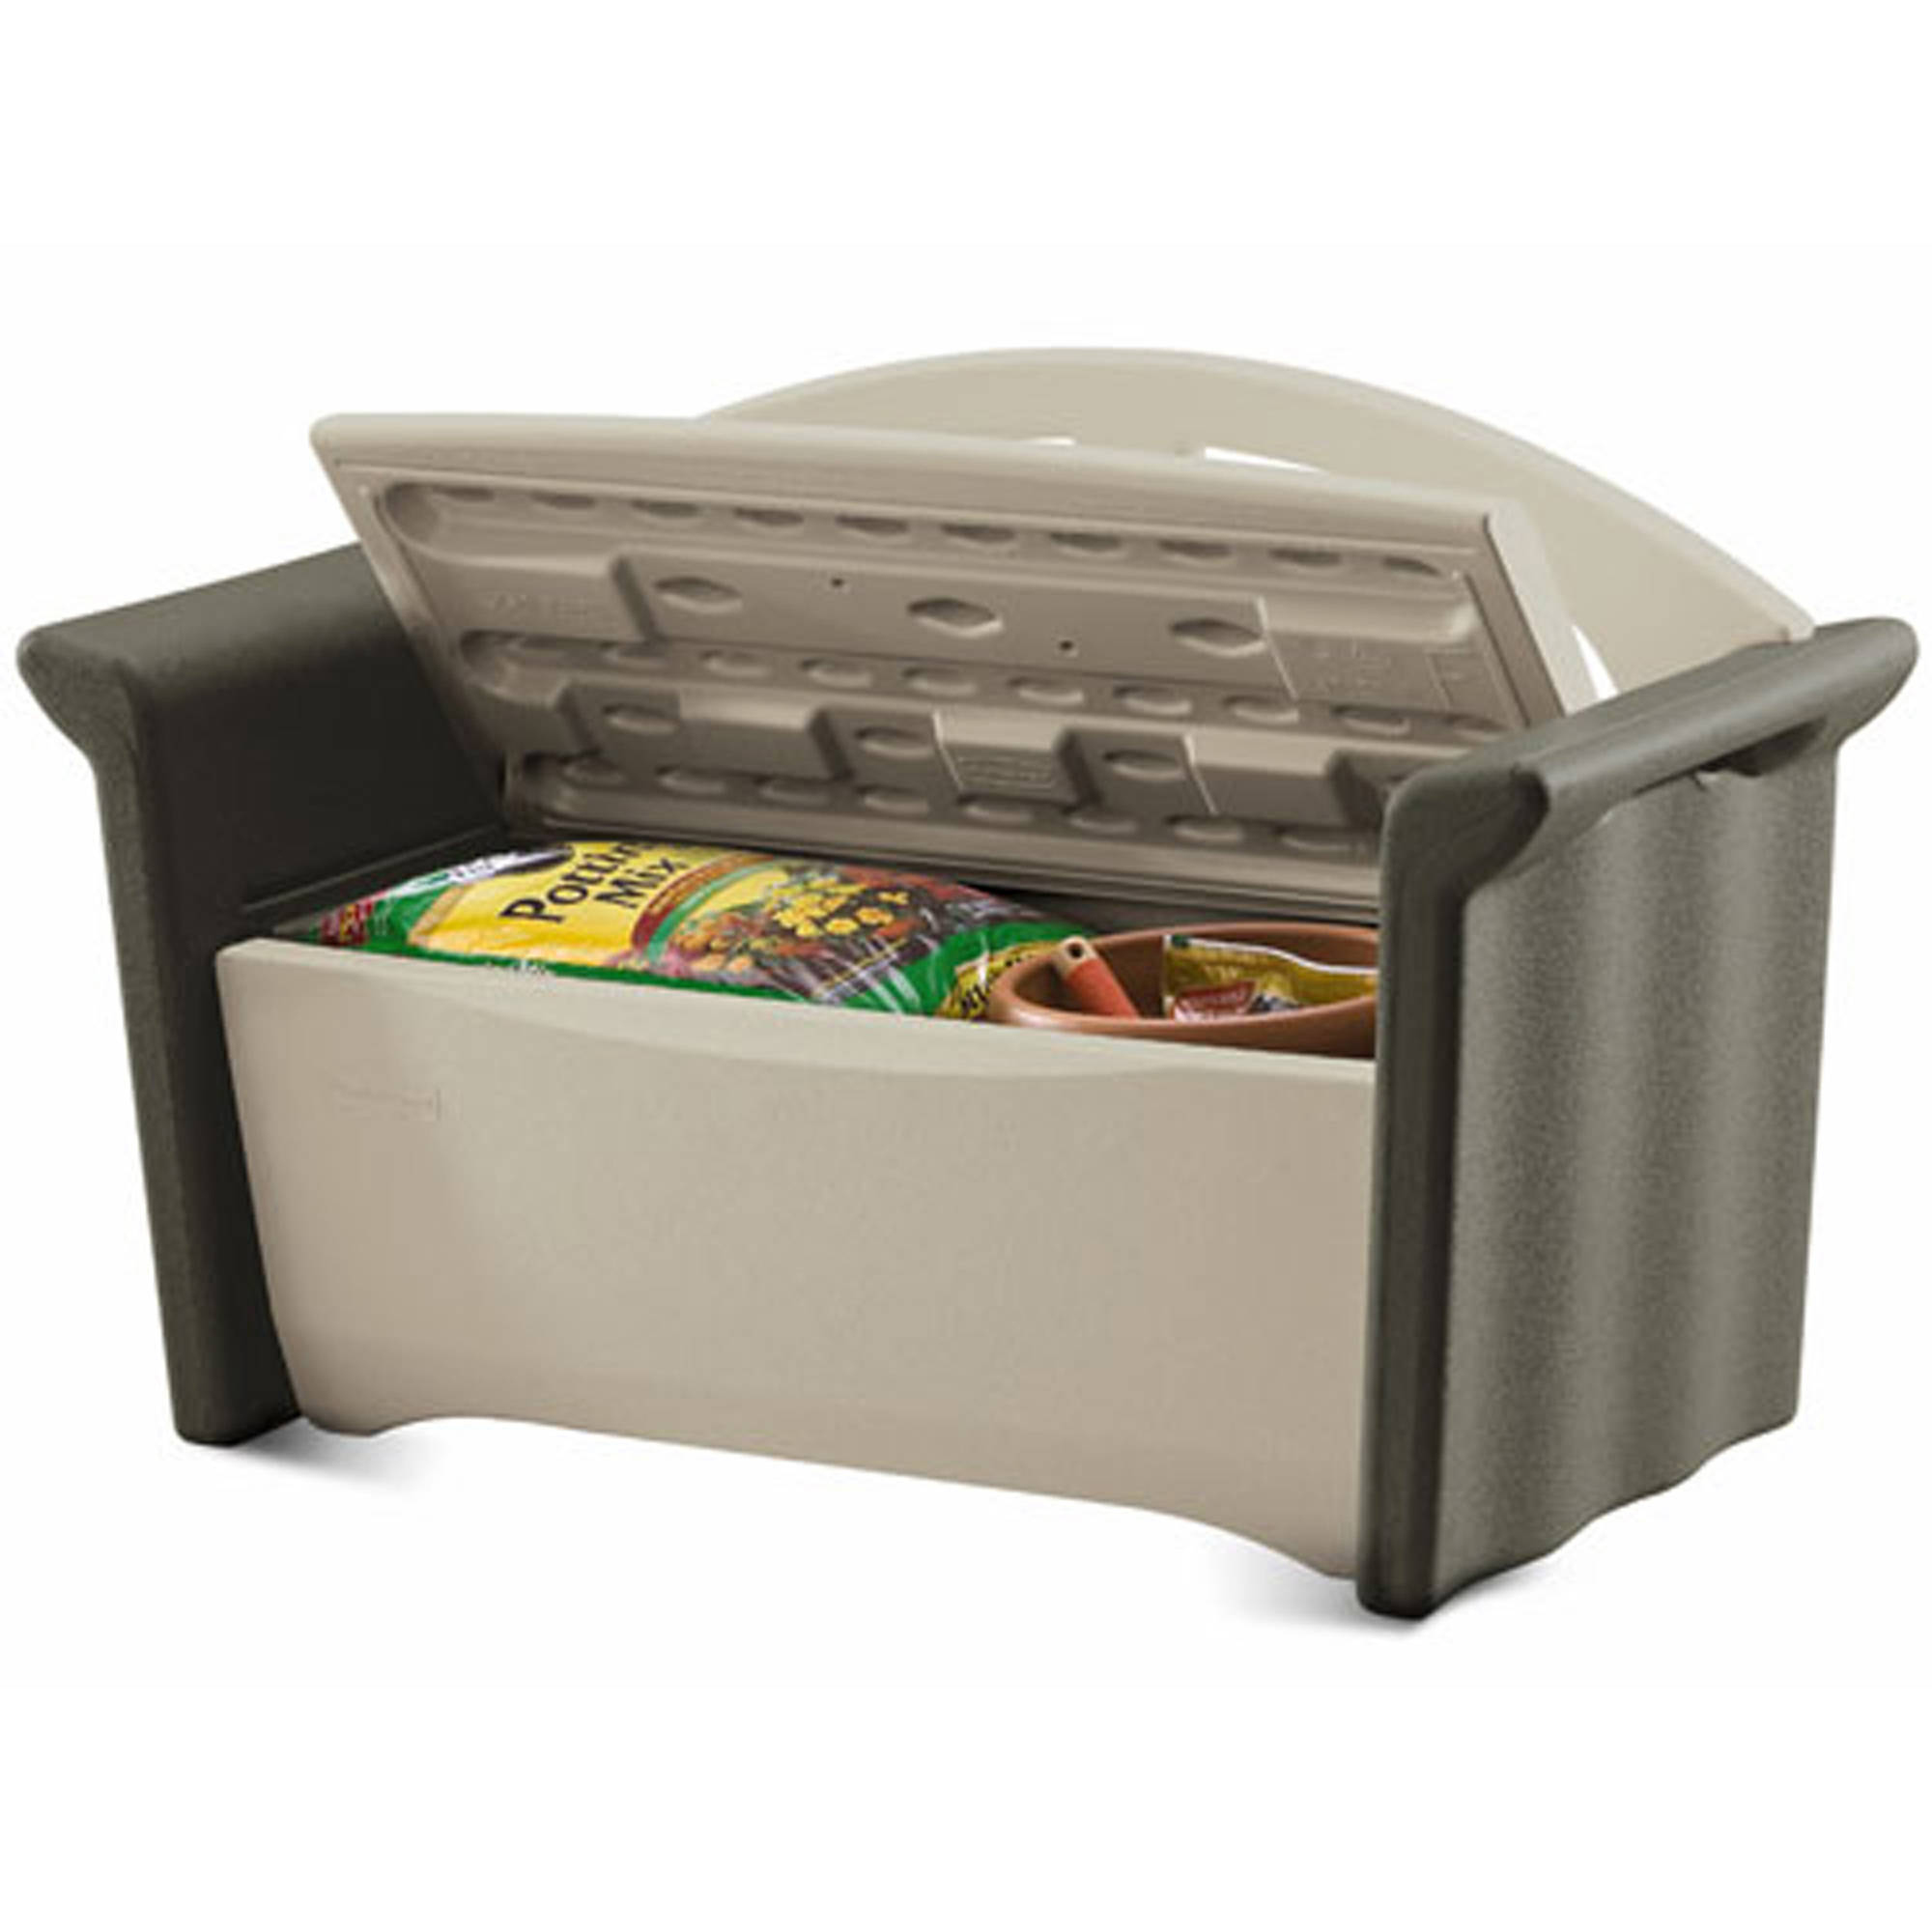 Rubbermaid Patio Storage | Rubbermaid Storage Bench | Rubbermaid Patio Storage Bench 3764